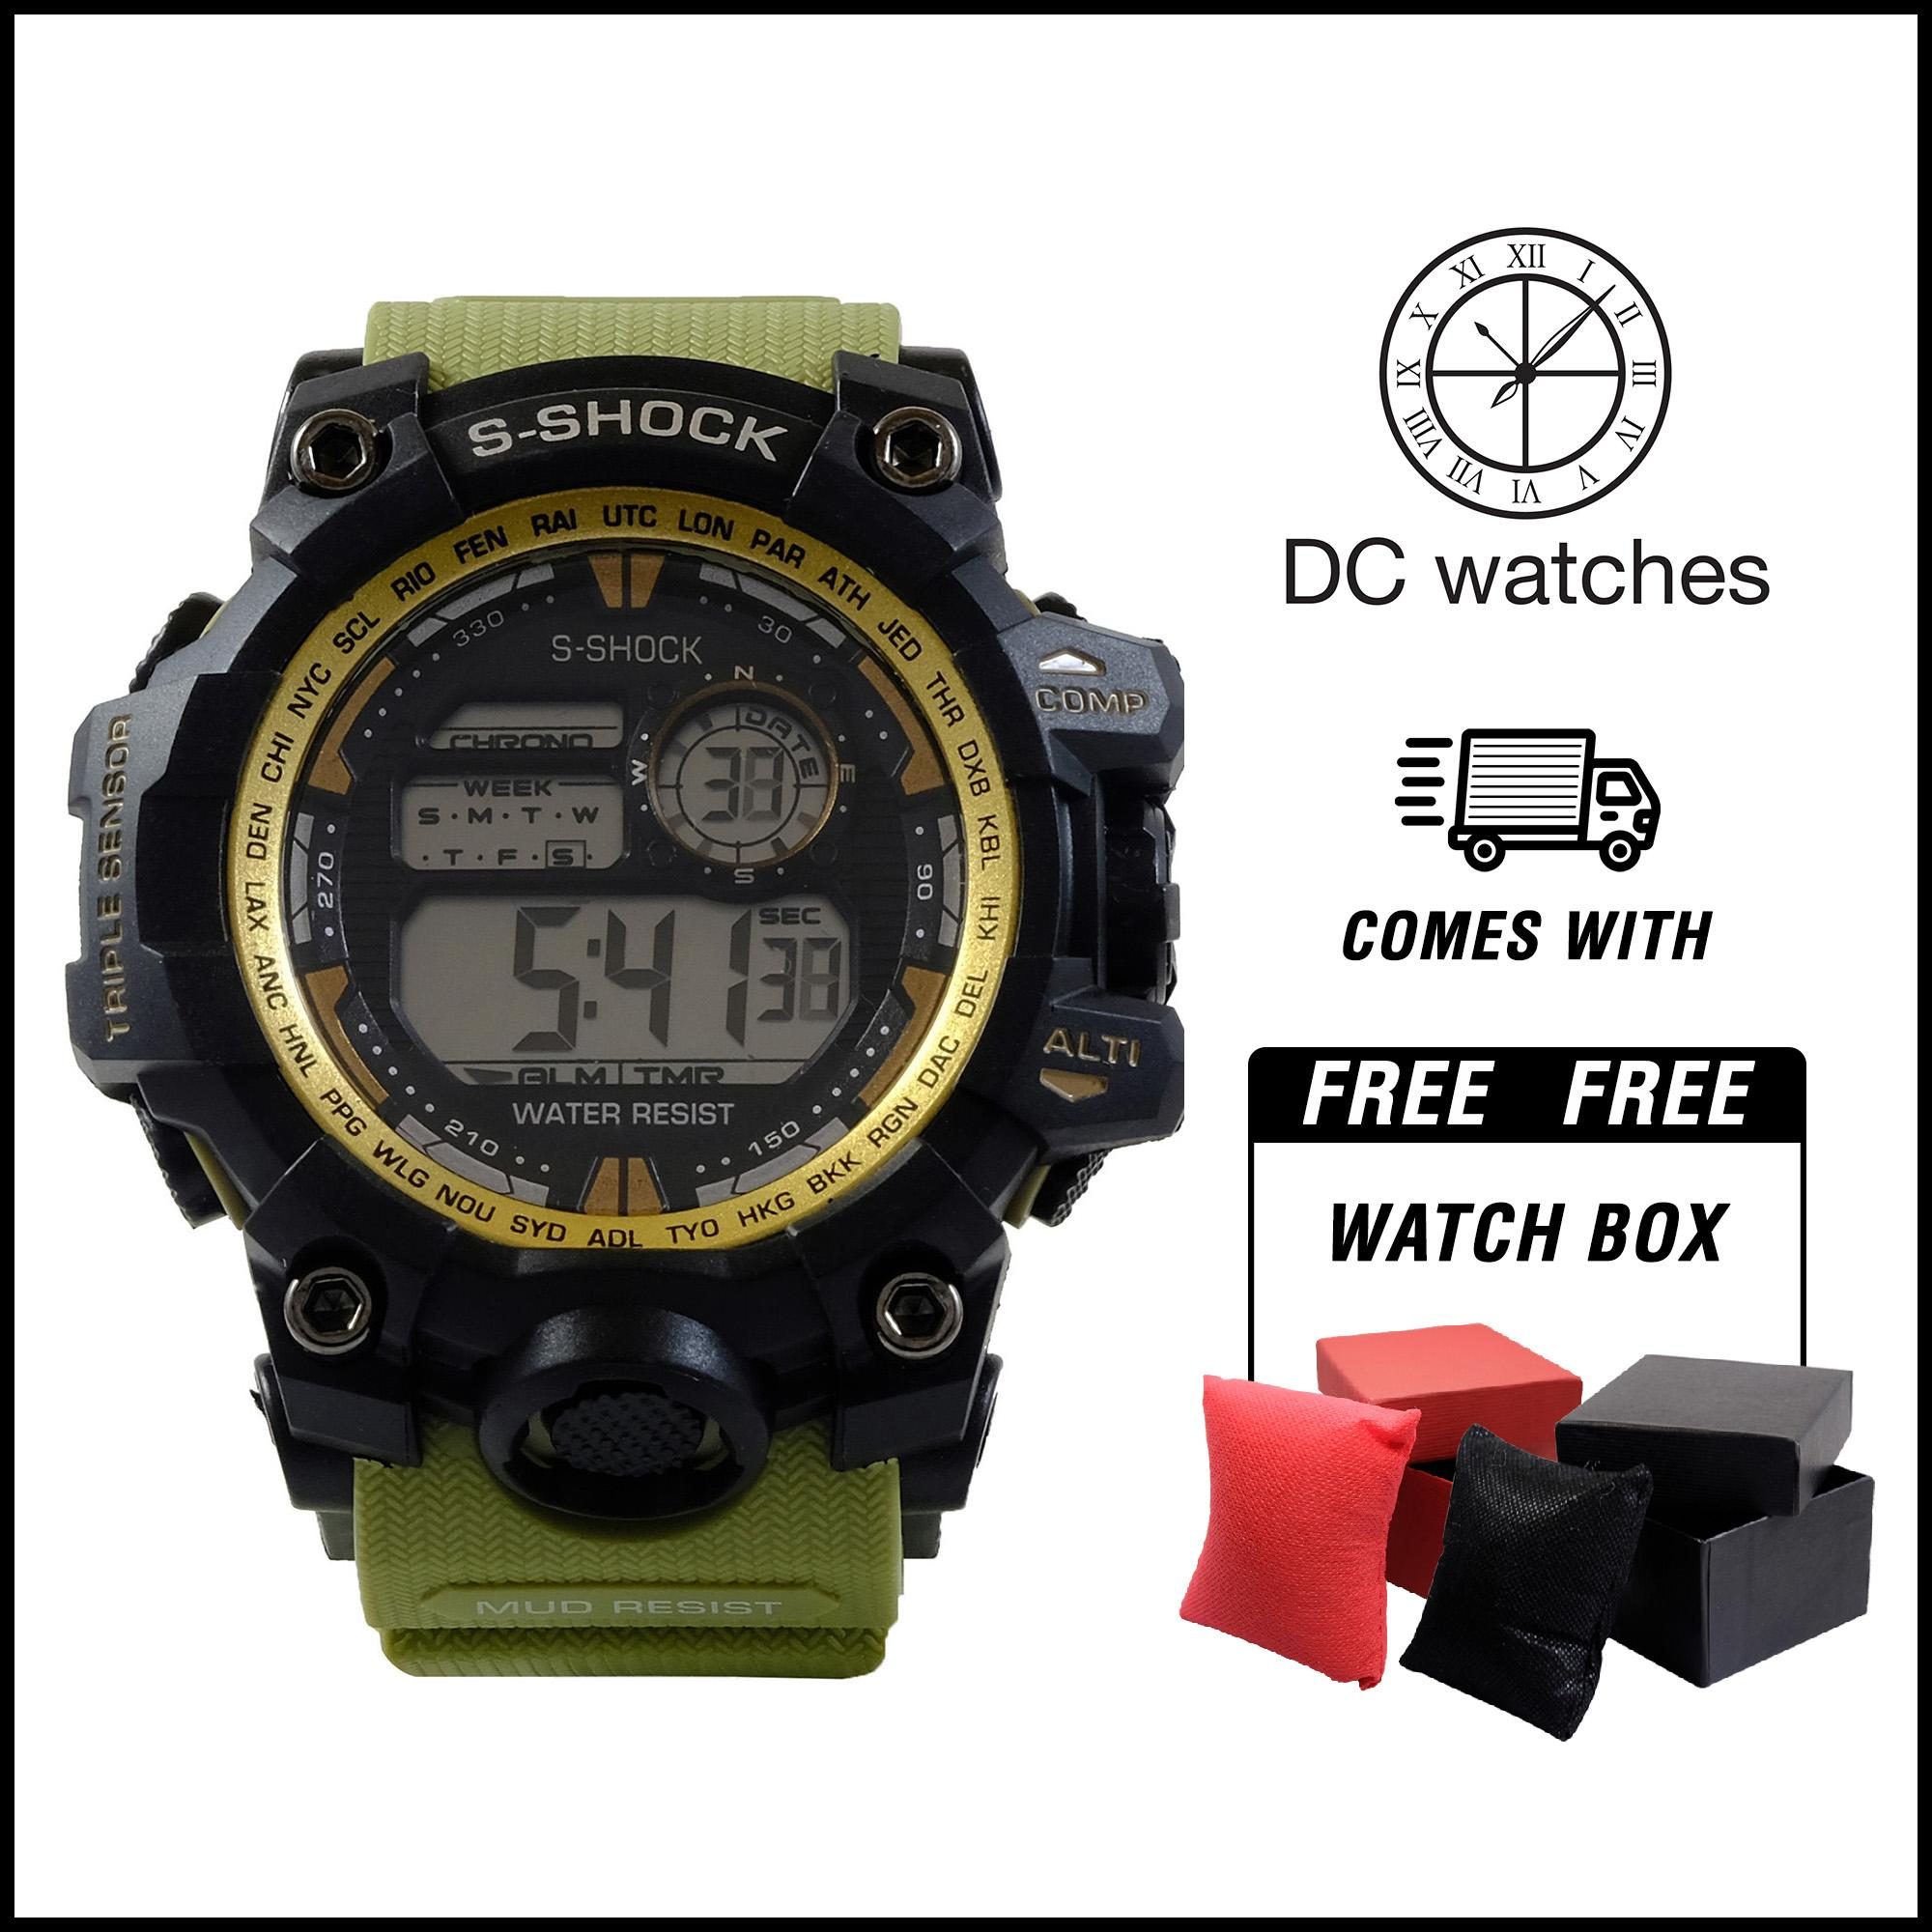 64ff367f8 DC Watches S-shock World Time 9977 WATERPROOF watch for men watch for women  watches